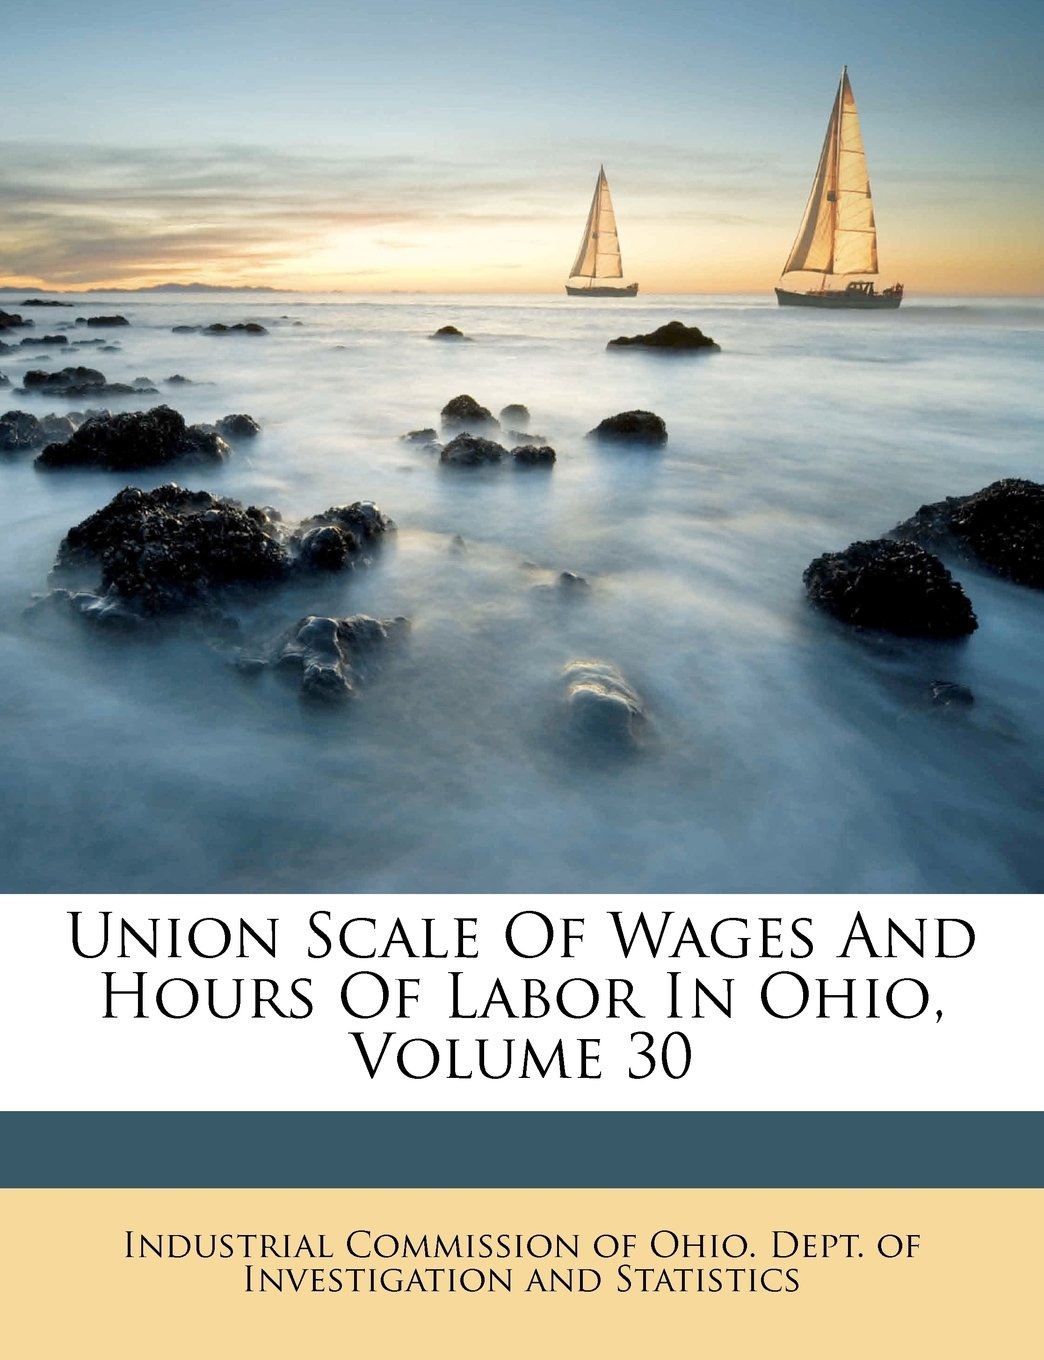 Union Scale Of Wages And Hours Of Labor In Ohio, Volume 30 ebook